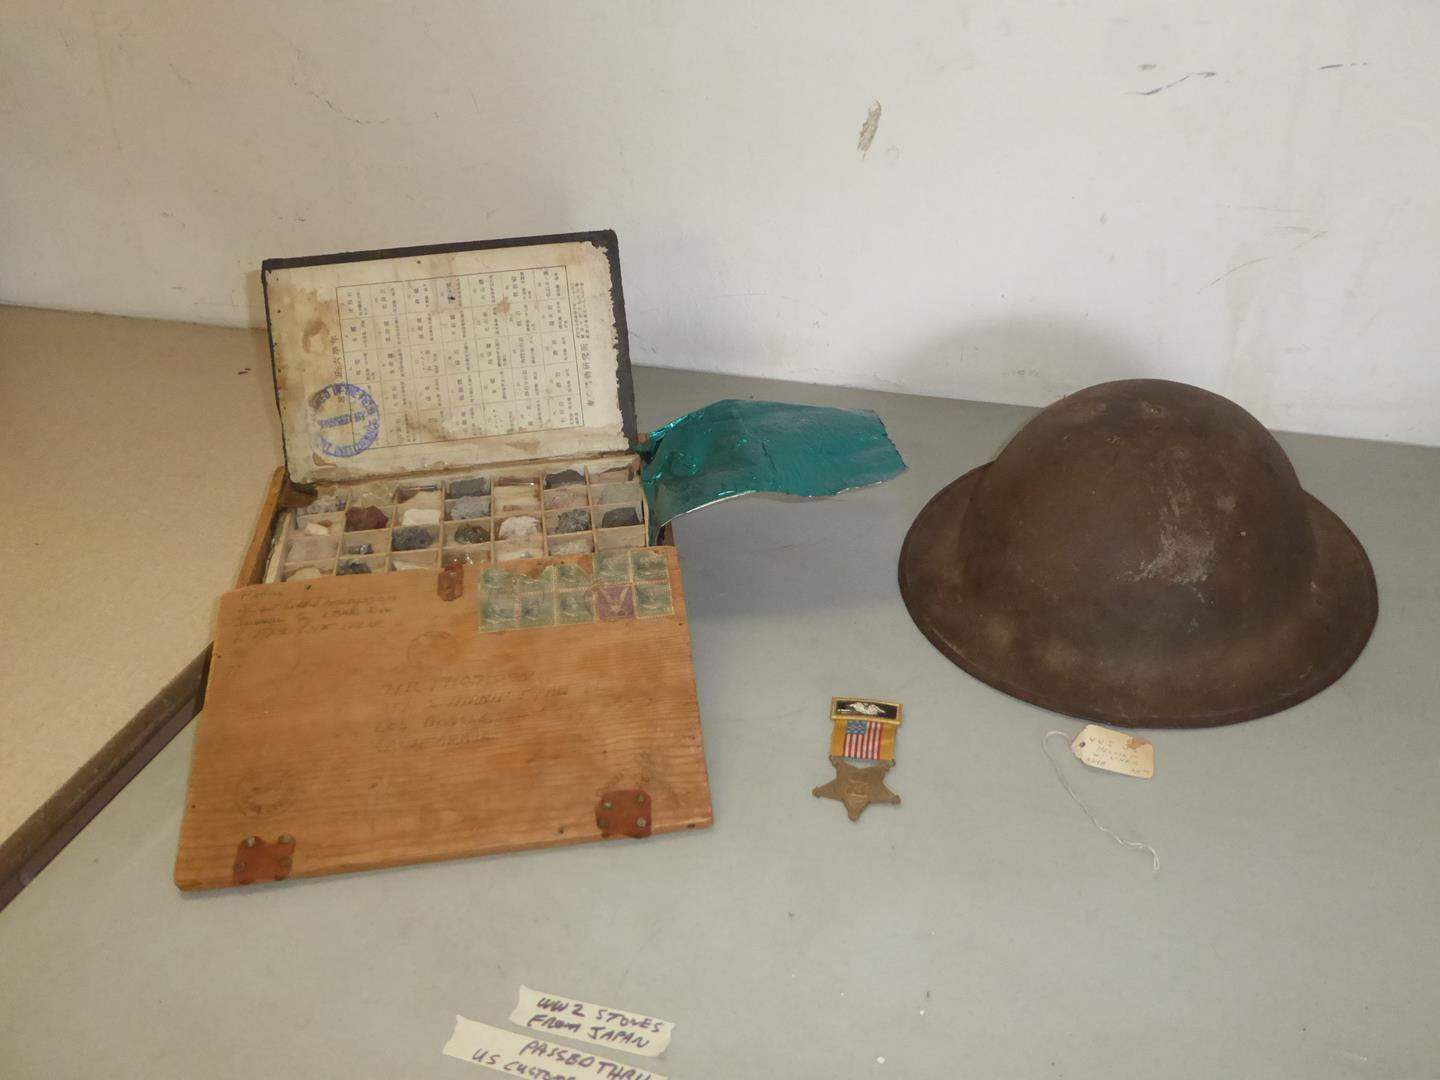 Lot # 242 - WWII Rocks From Japan Passed Through US Customs in 1945, WWI Helmet & Army Medal (main image)